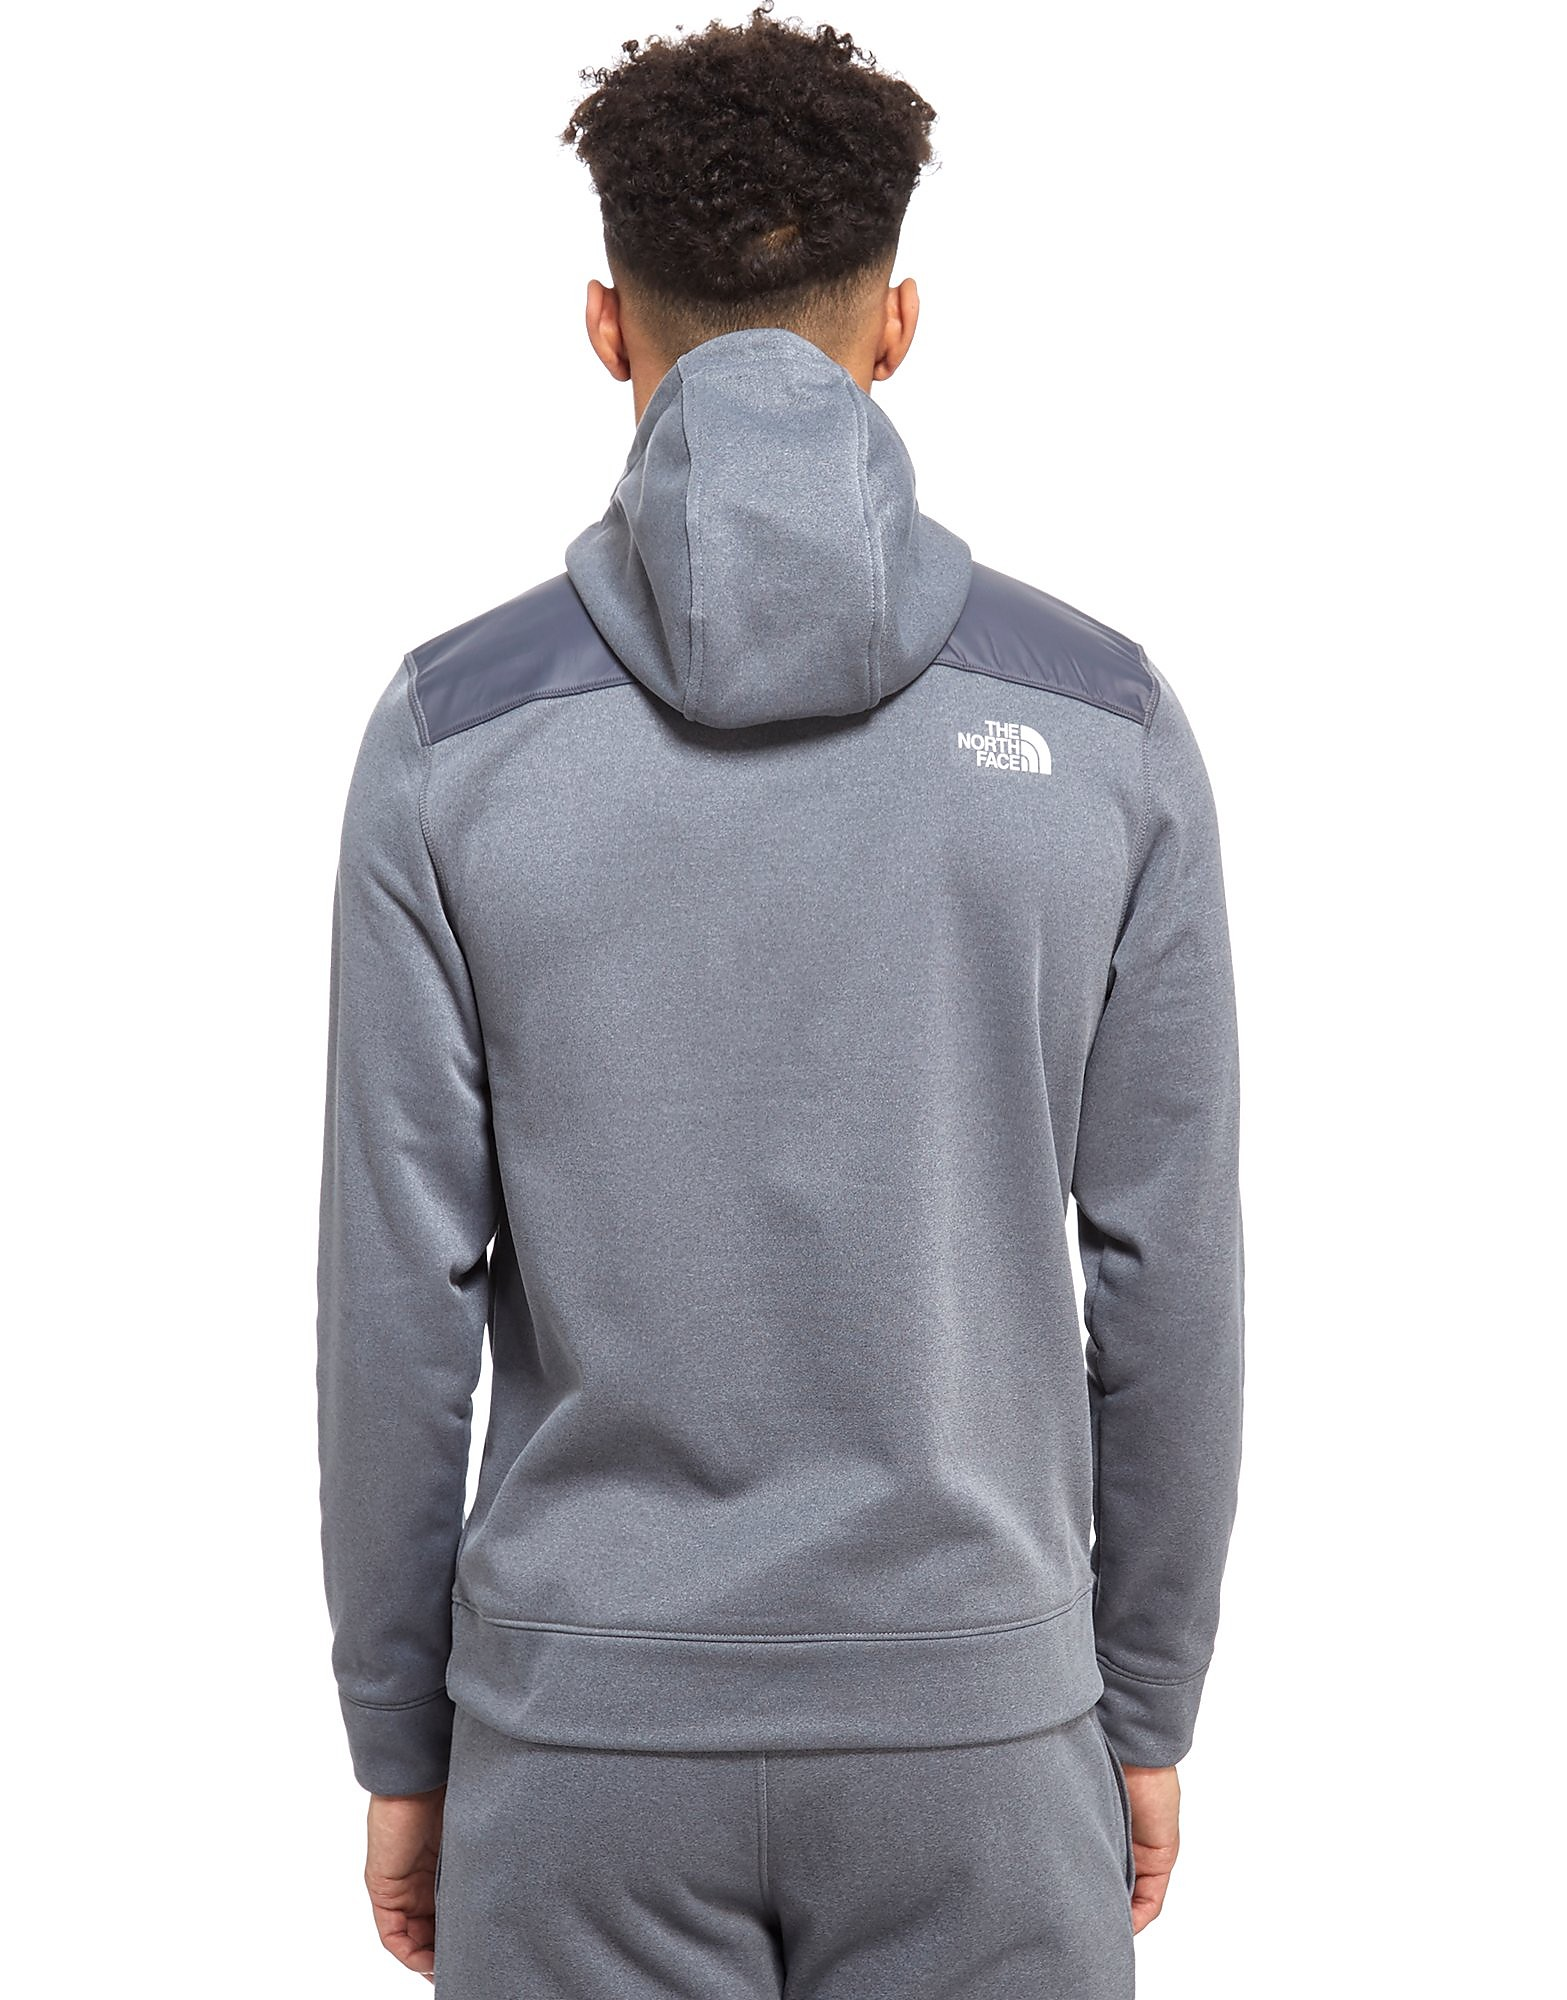 The North Face Sudadera con capucha Mittellegi 1/4 Zip